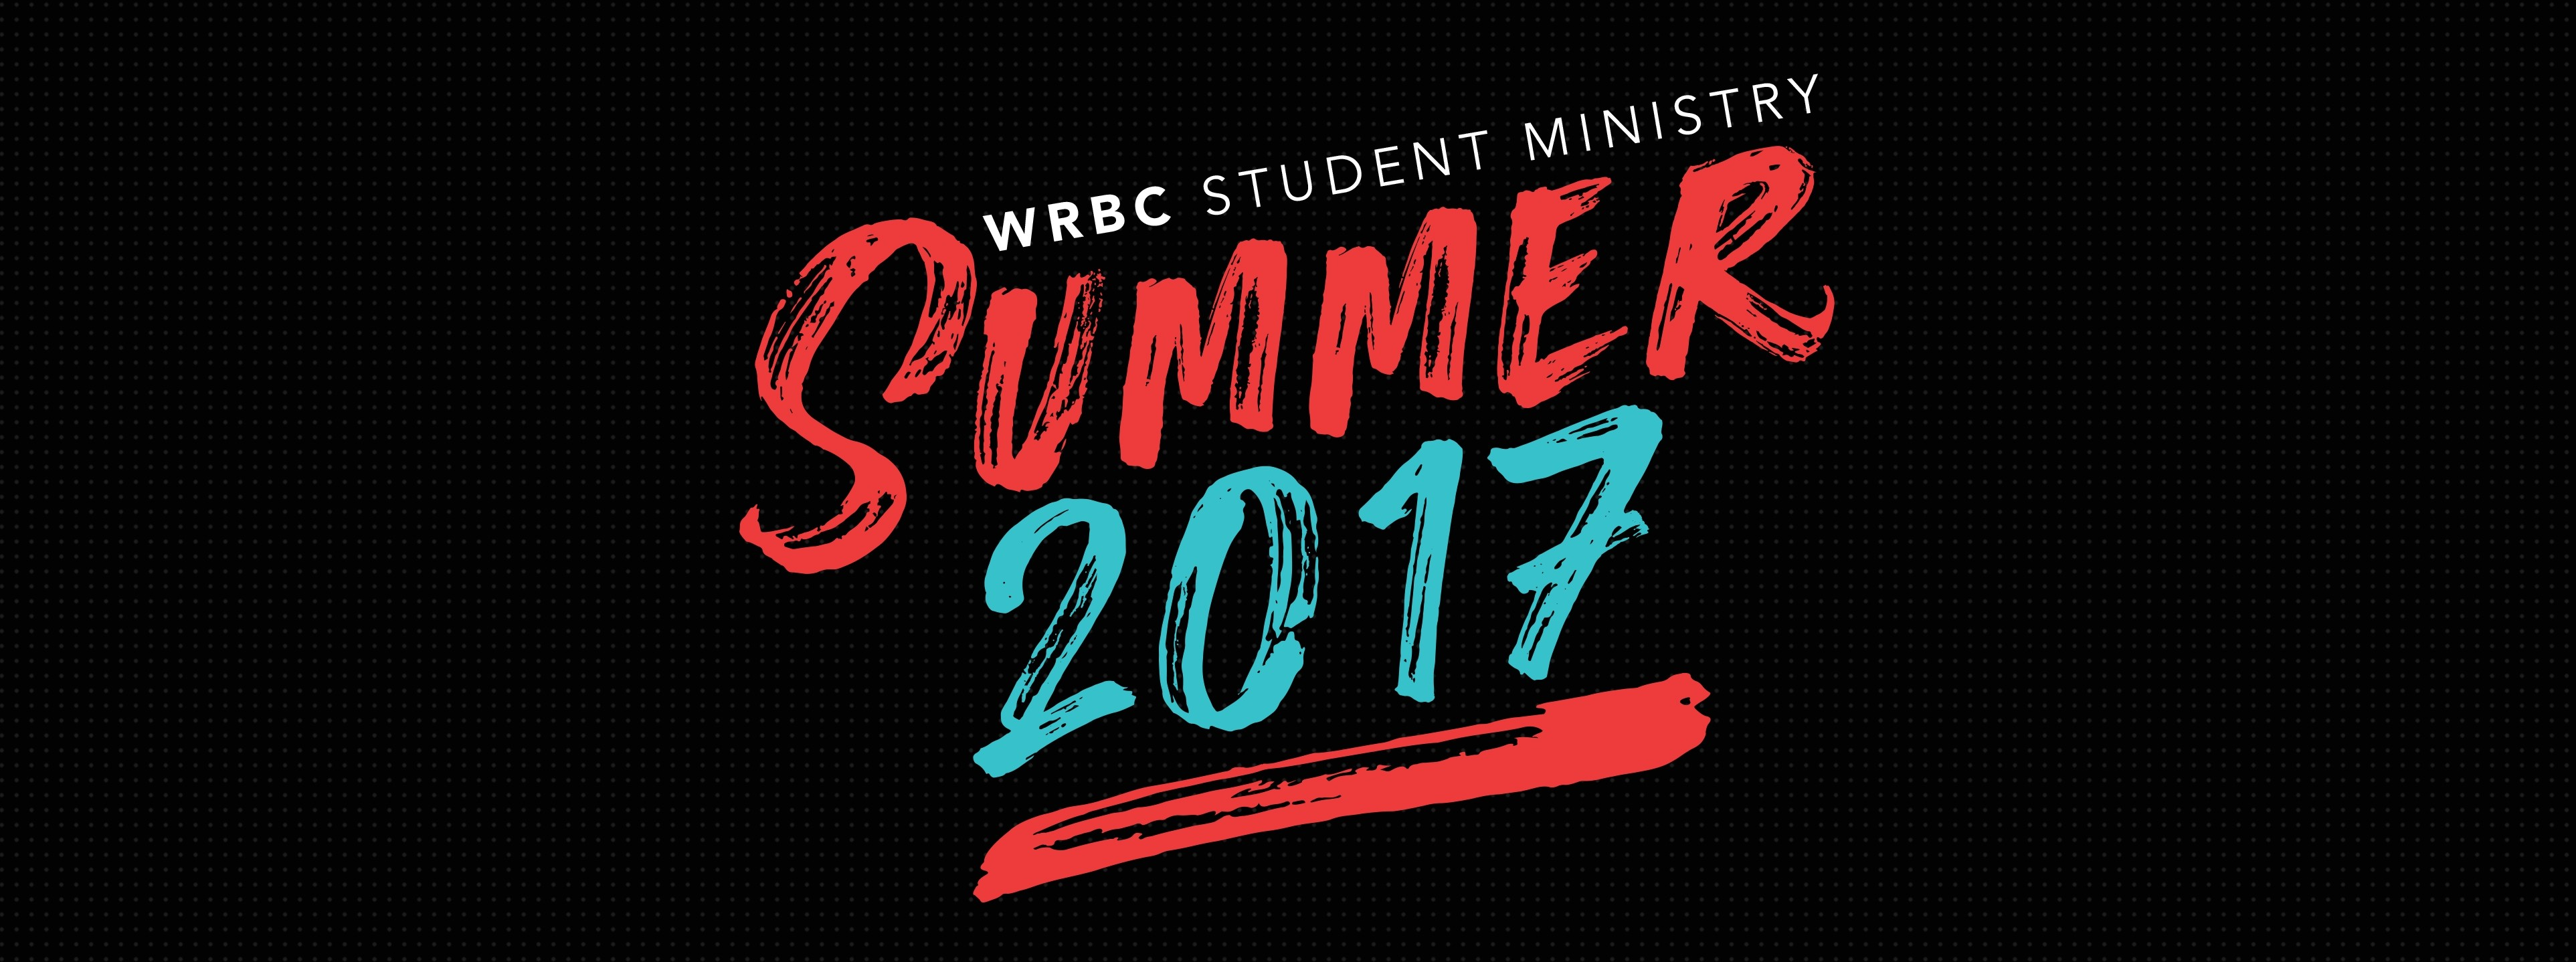 Summer-StudentMinistry